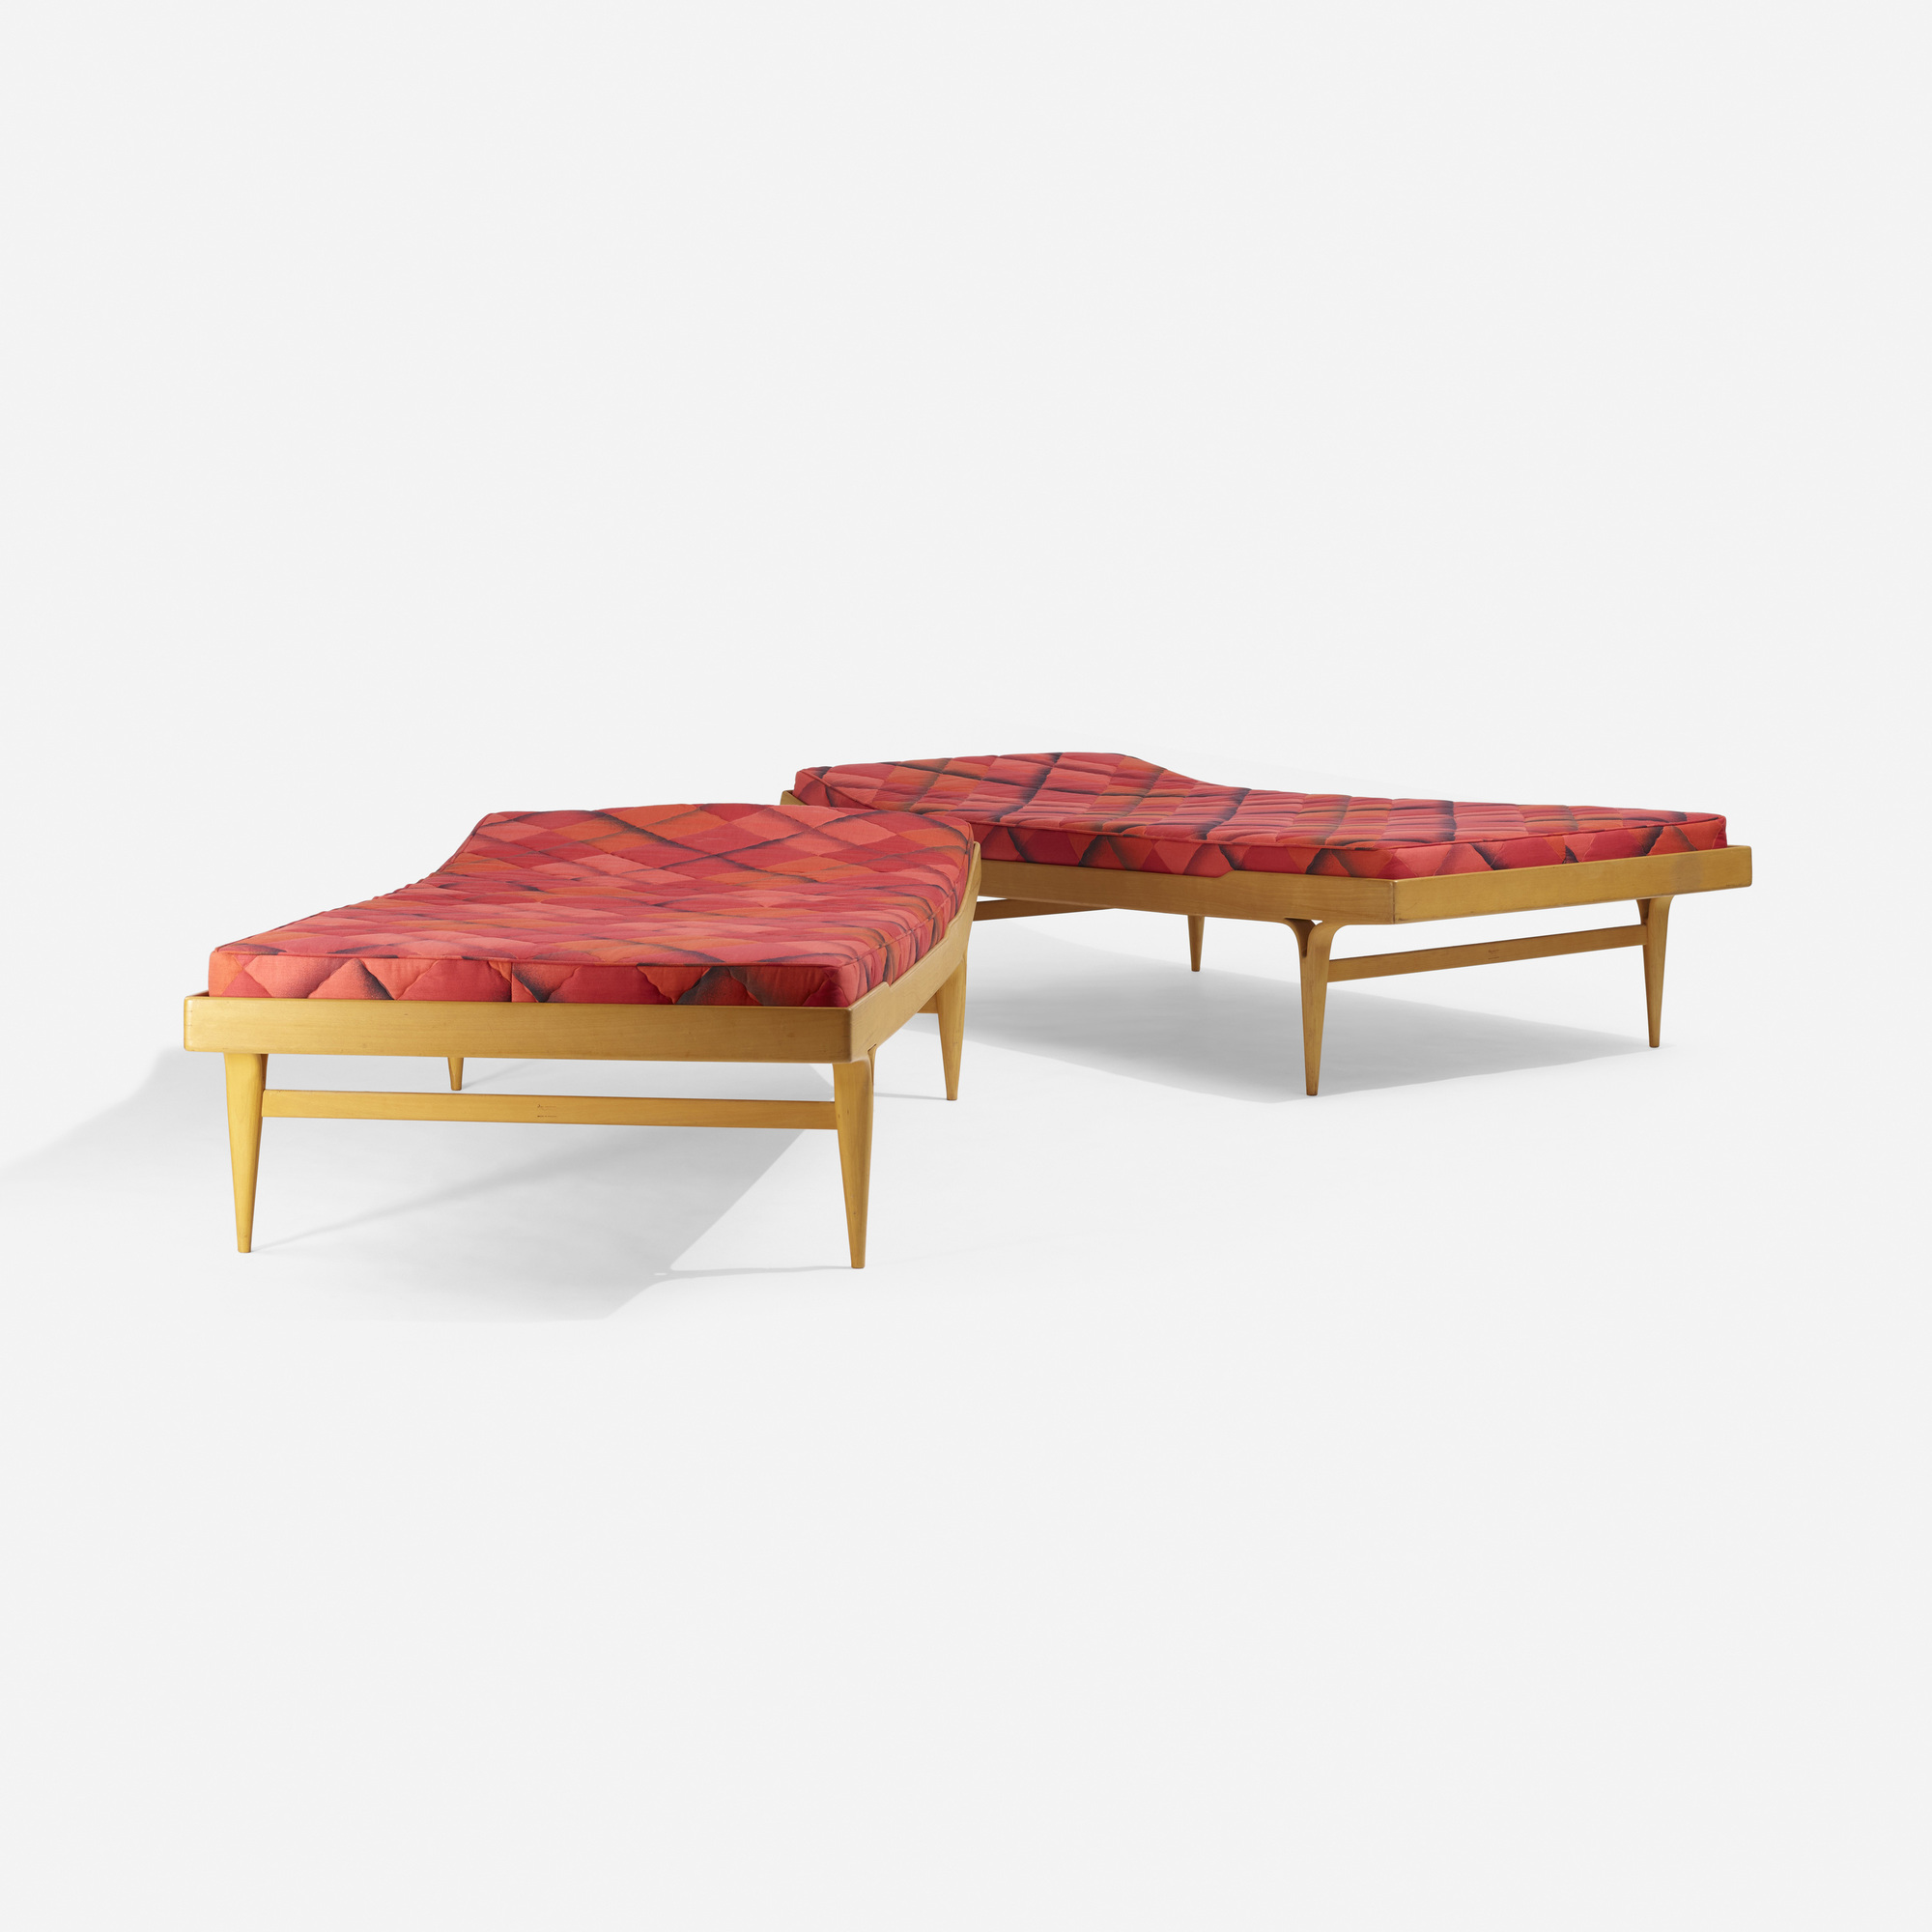 331: Bruno Mathsson / daybeds, pair (2 of 3)